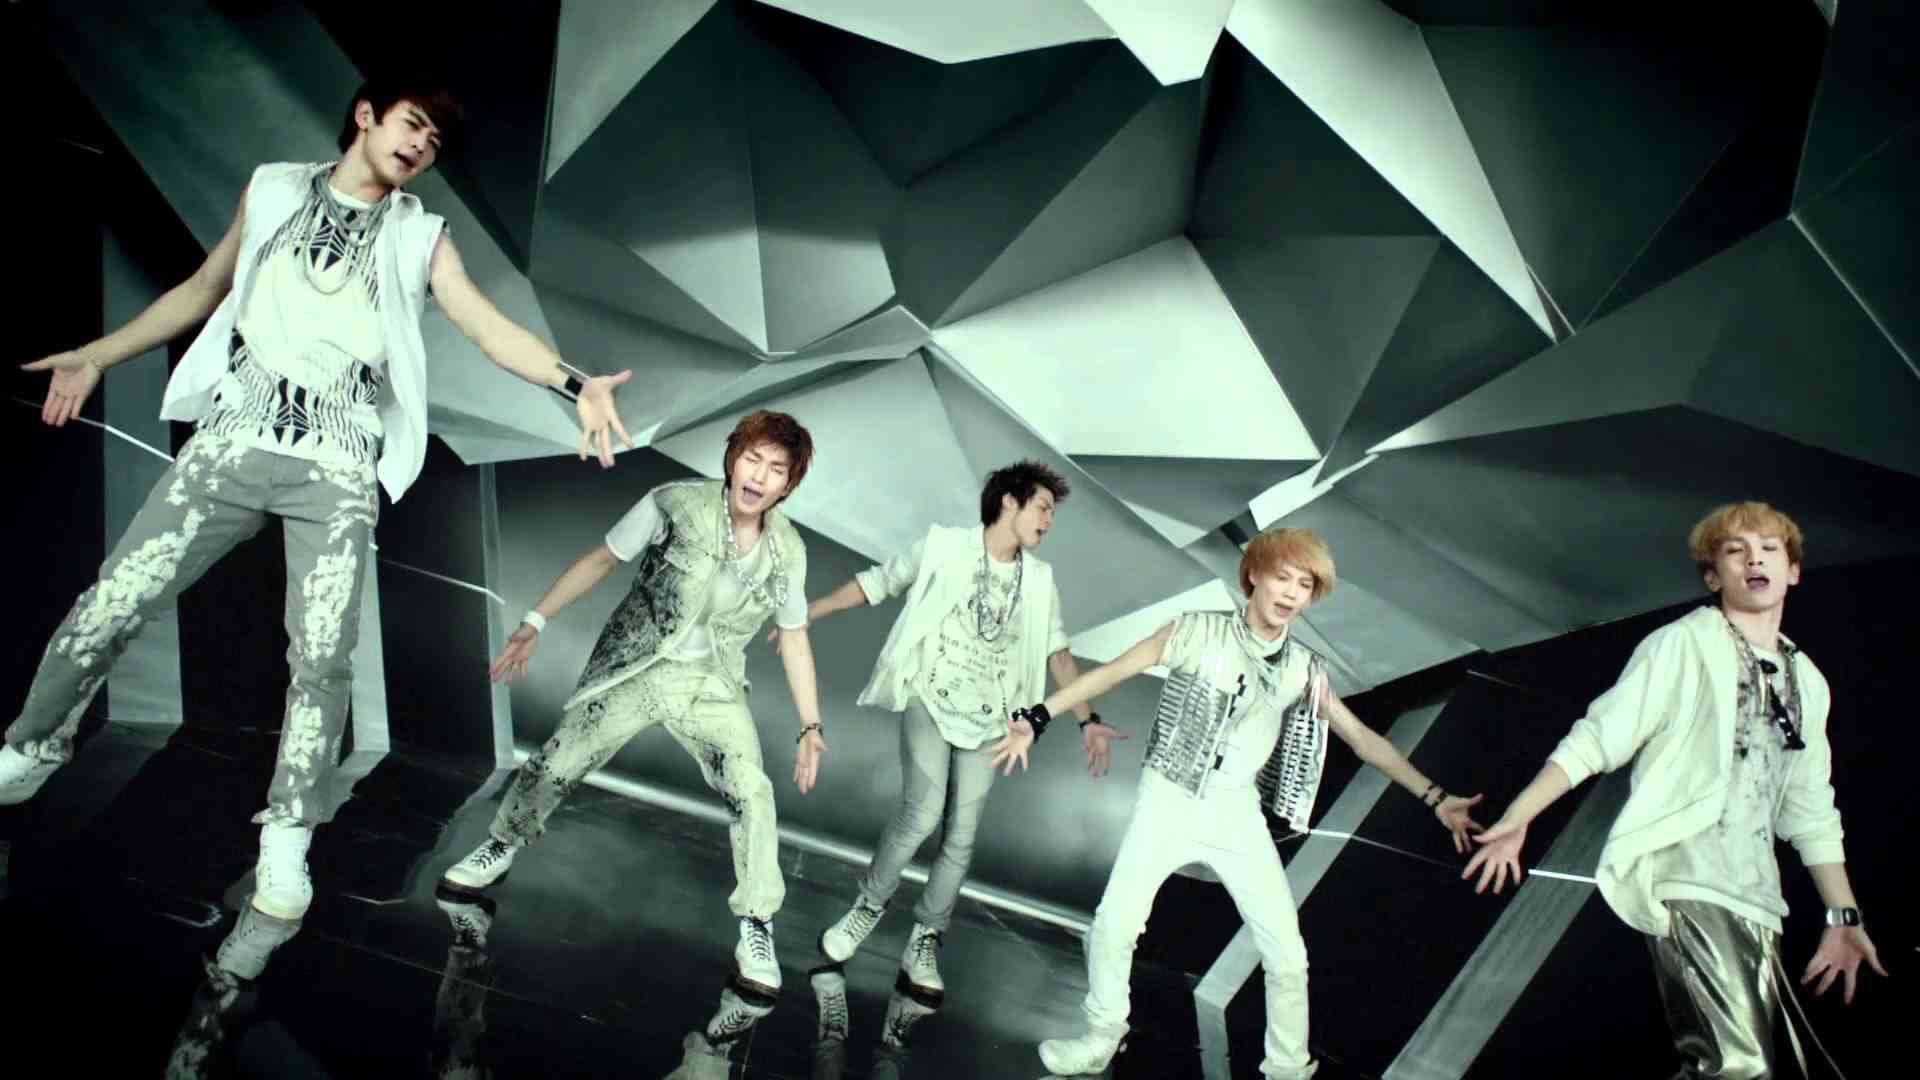 SHINee - 「LUCIFER」Music Video - YouTube